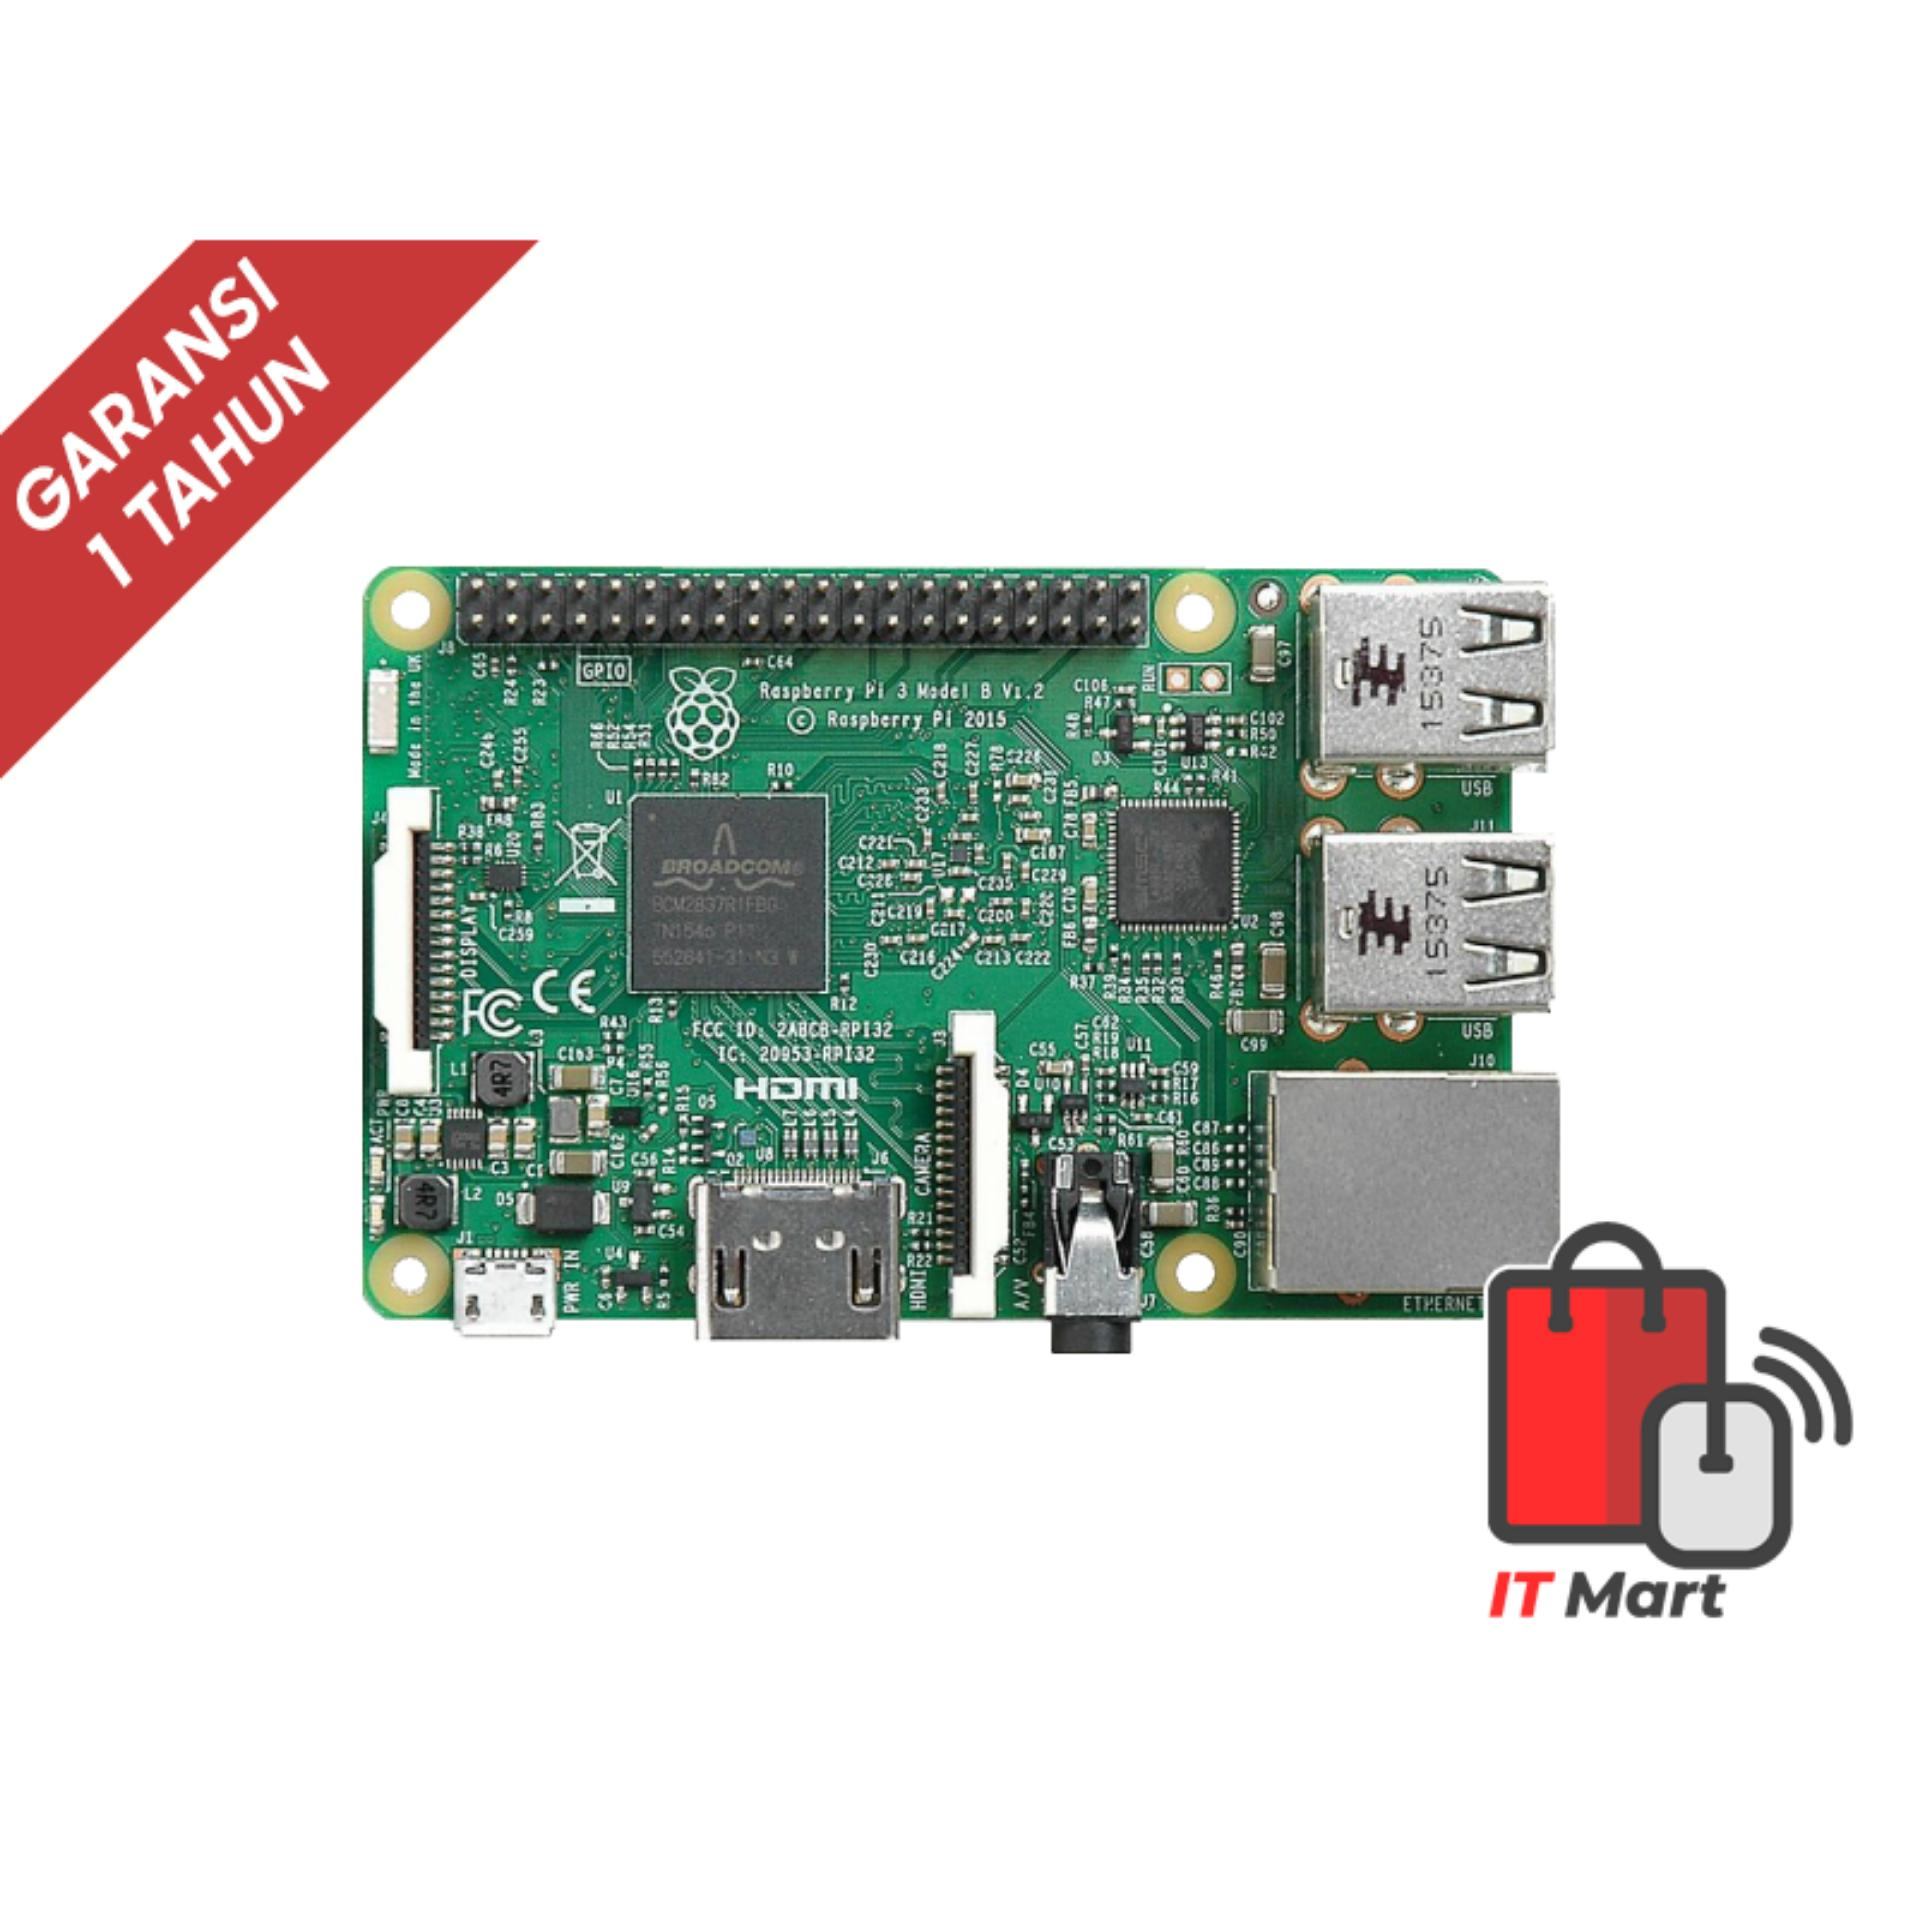 https://www.lazada.co.id/products/raspberry-pi-3-model-b-i156952381-s177761142.html